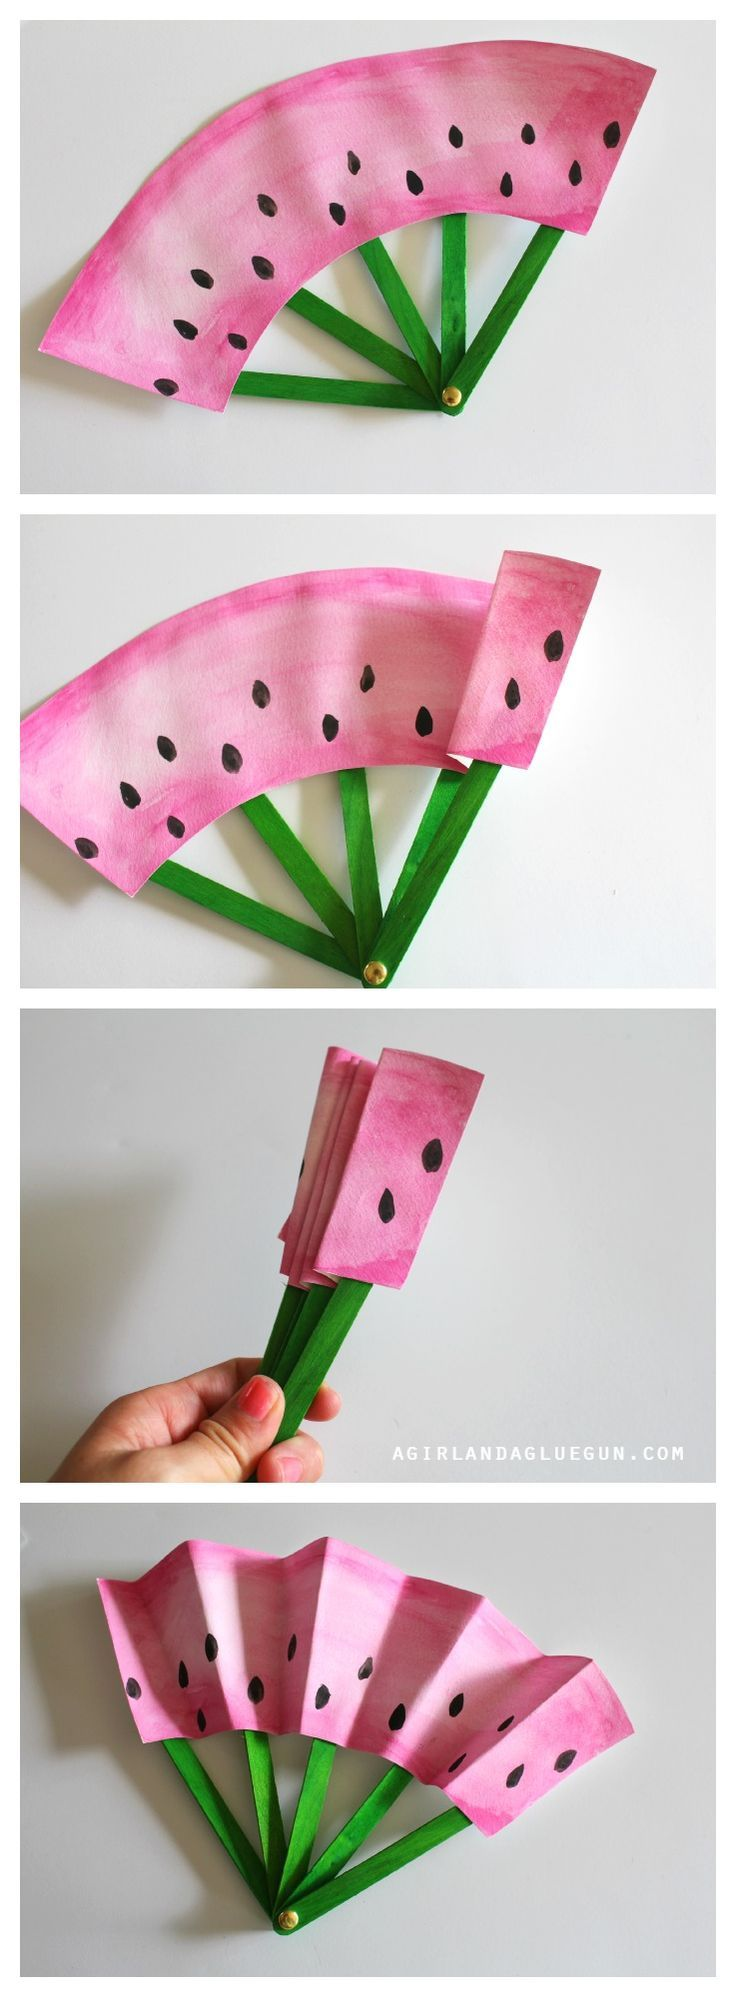 arts and crafts to do at home with toddlers. best 25+ kid crafts ideas on pinterest | easy kids crafts, fun for and arts to do at home with toddlers a